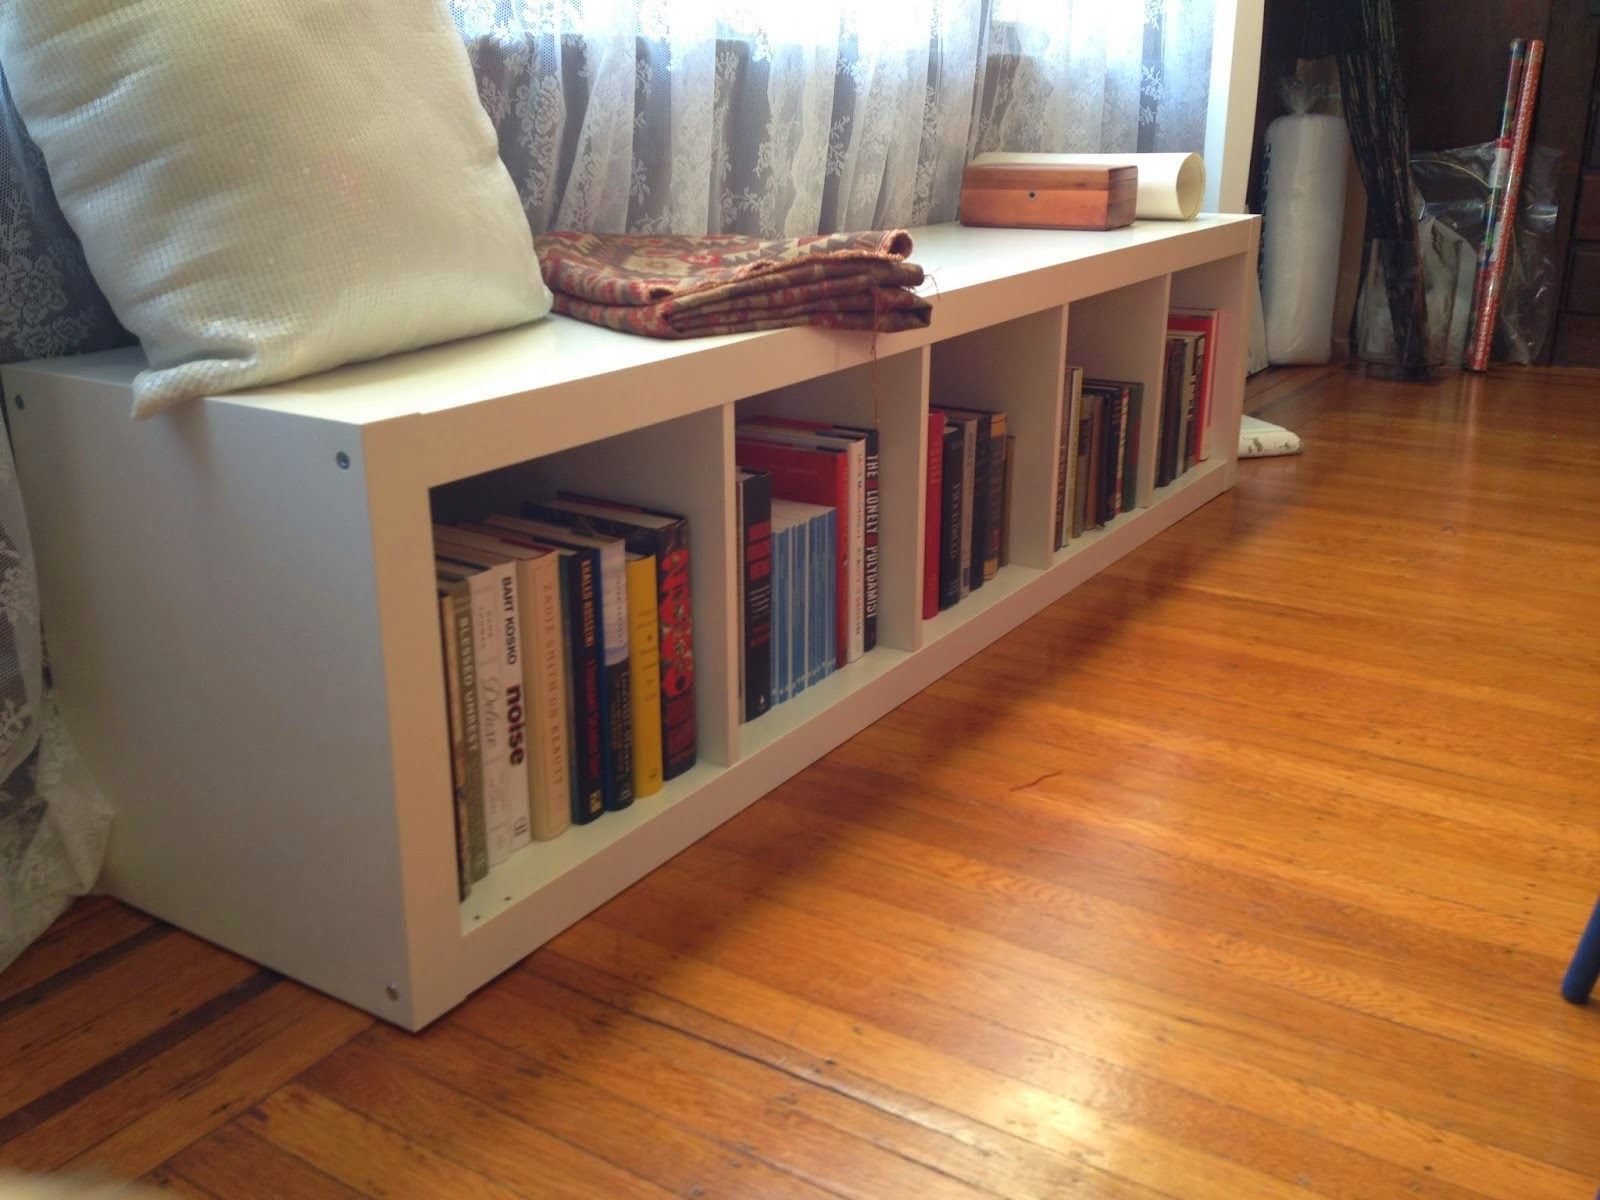 Hacks Ideas For Ikea Expedit Do It Yourself Ideas And Projects